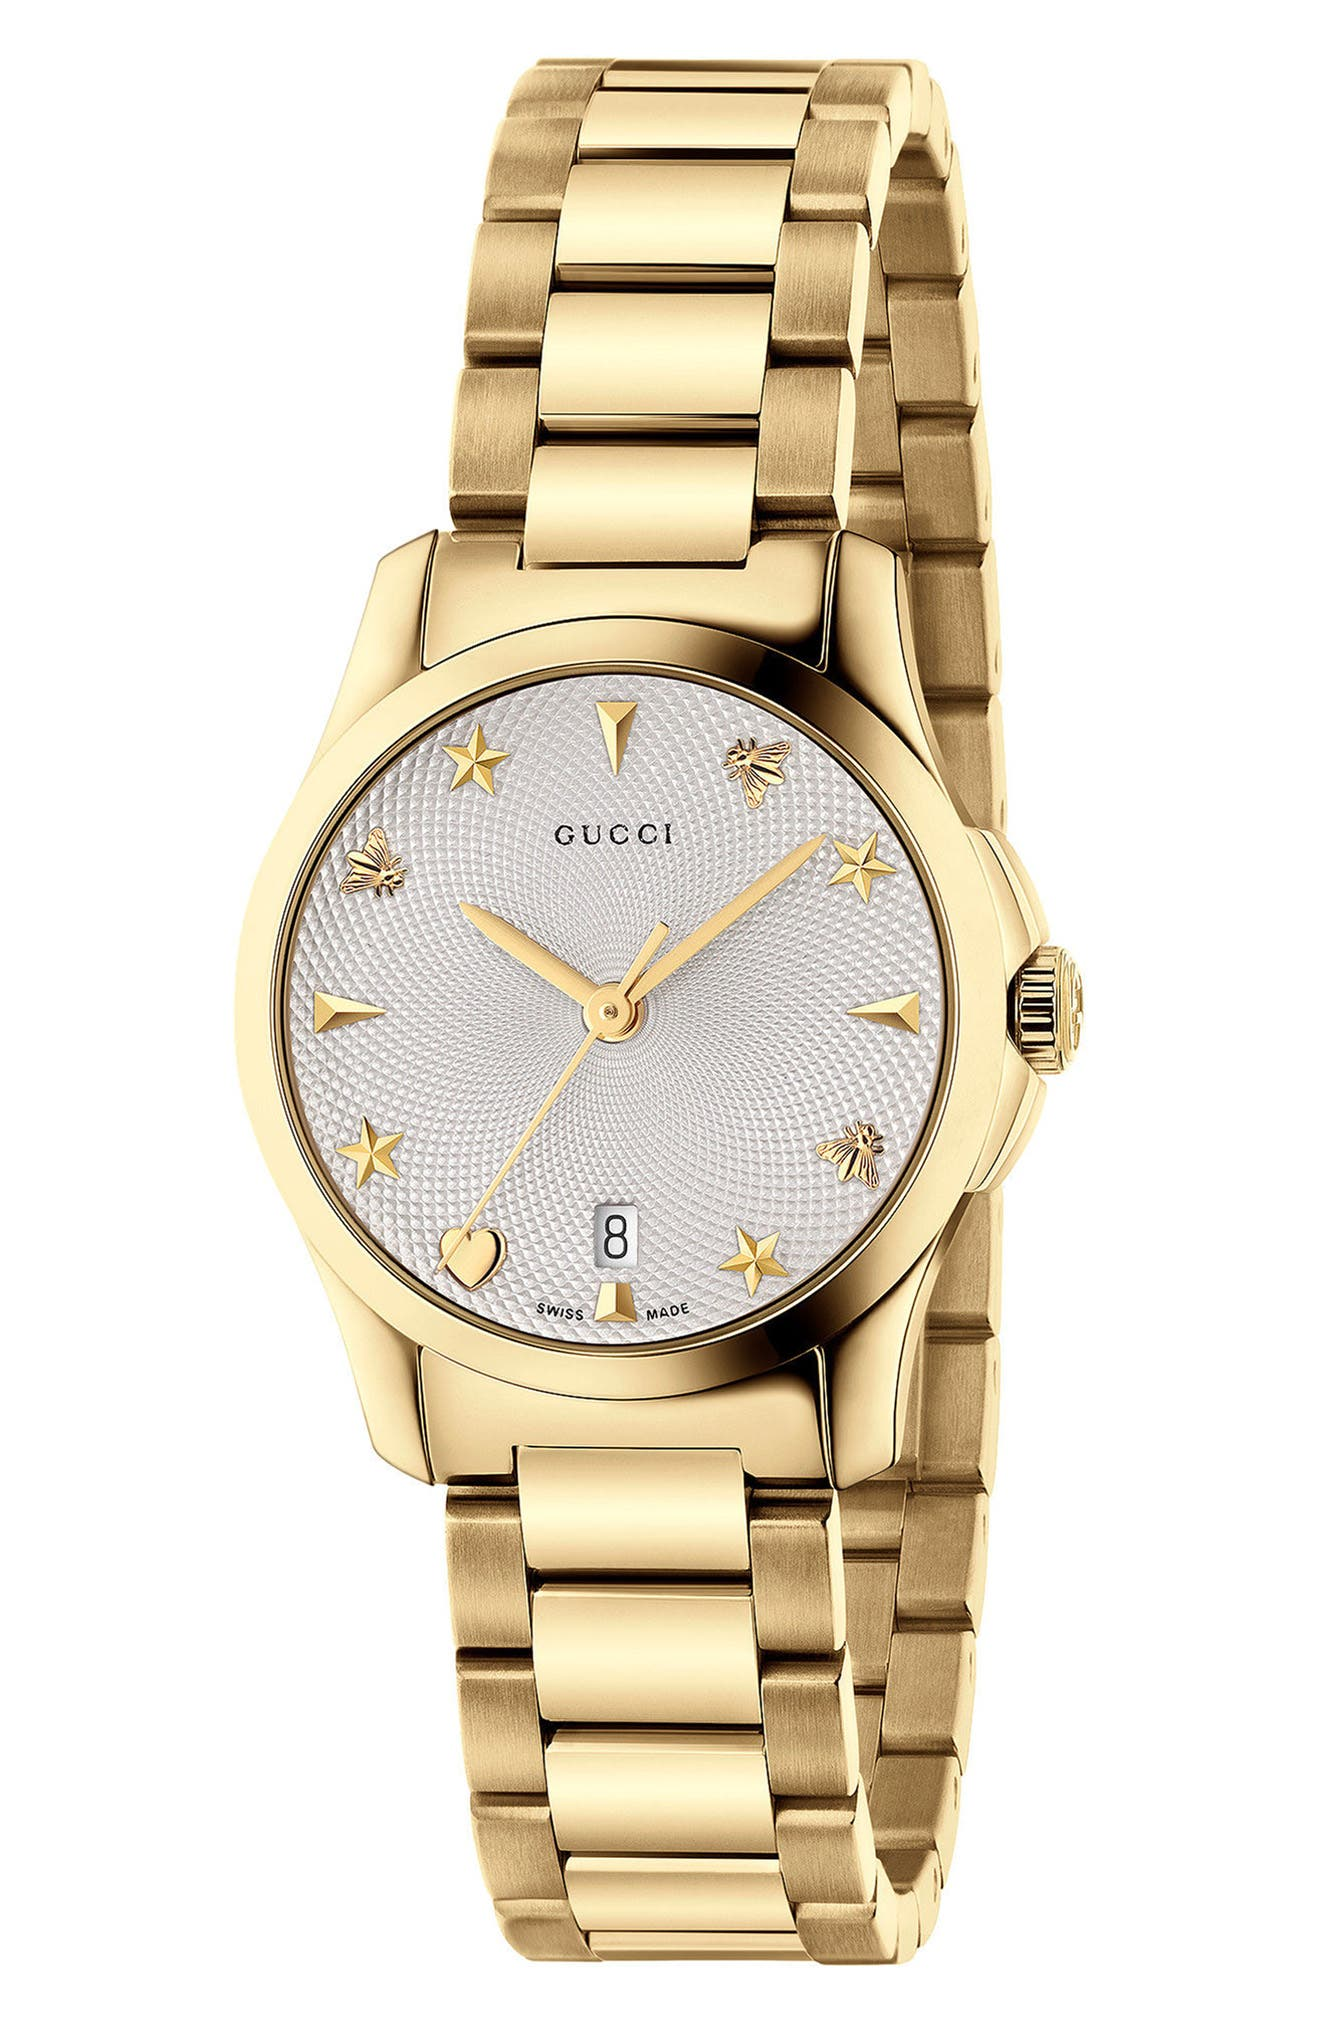 GUCCI, G-Timeless Bracelet Watch, 27mm, Main thumbnail 1, color, GOLD/ SILVER/ GOLD